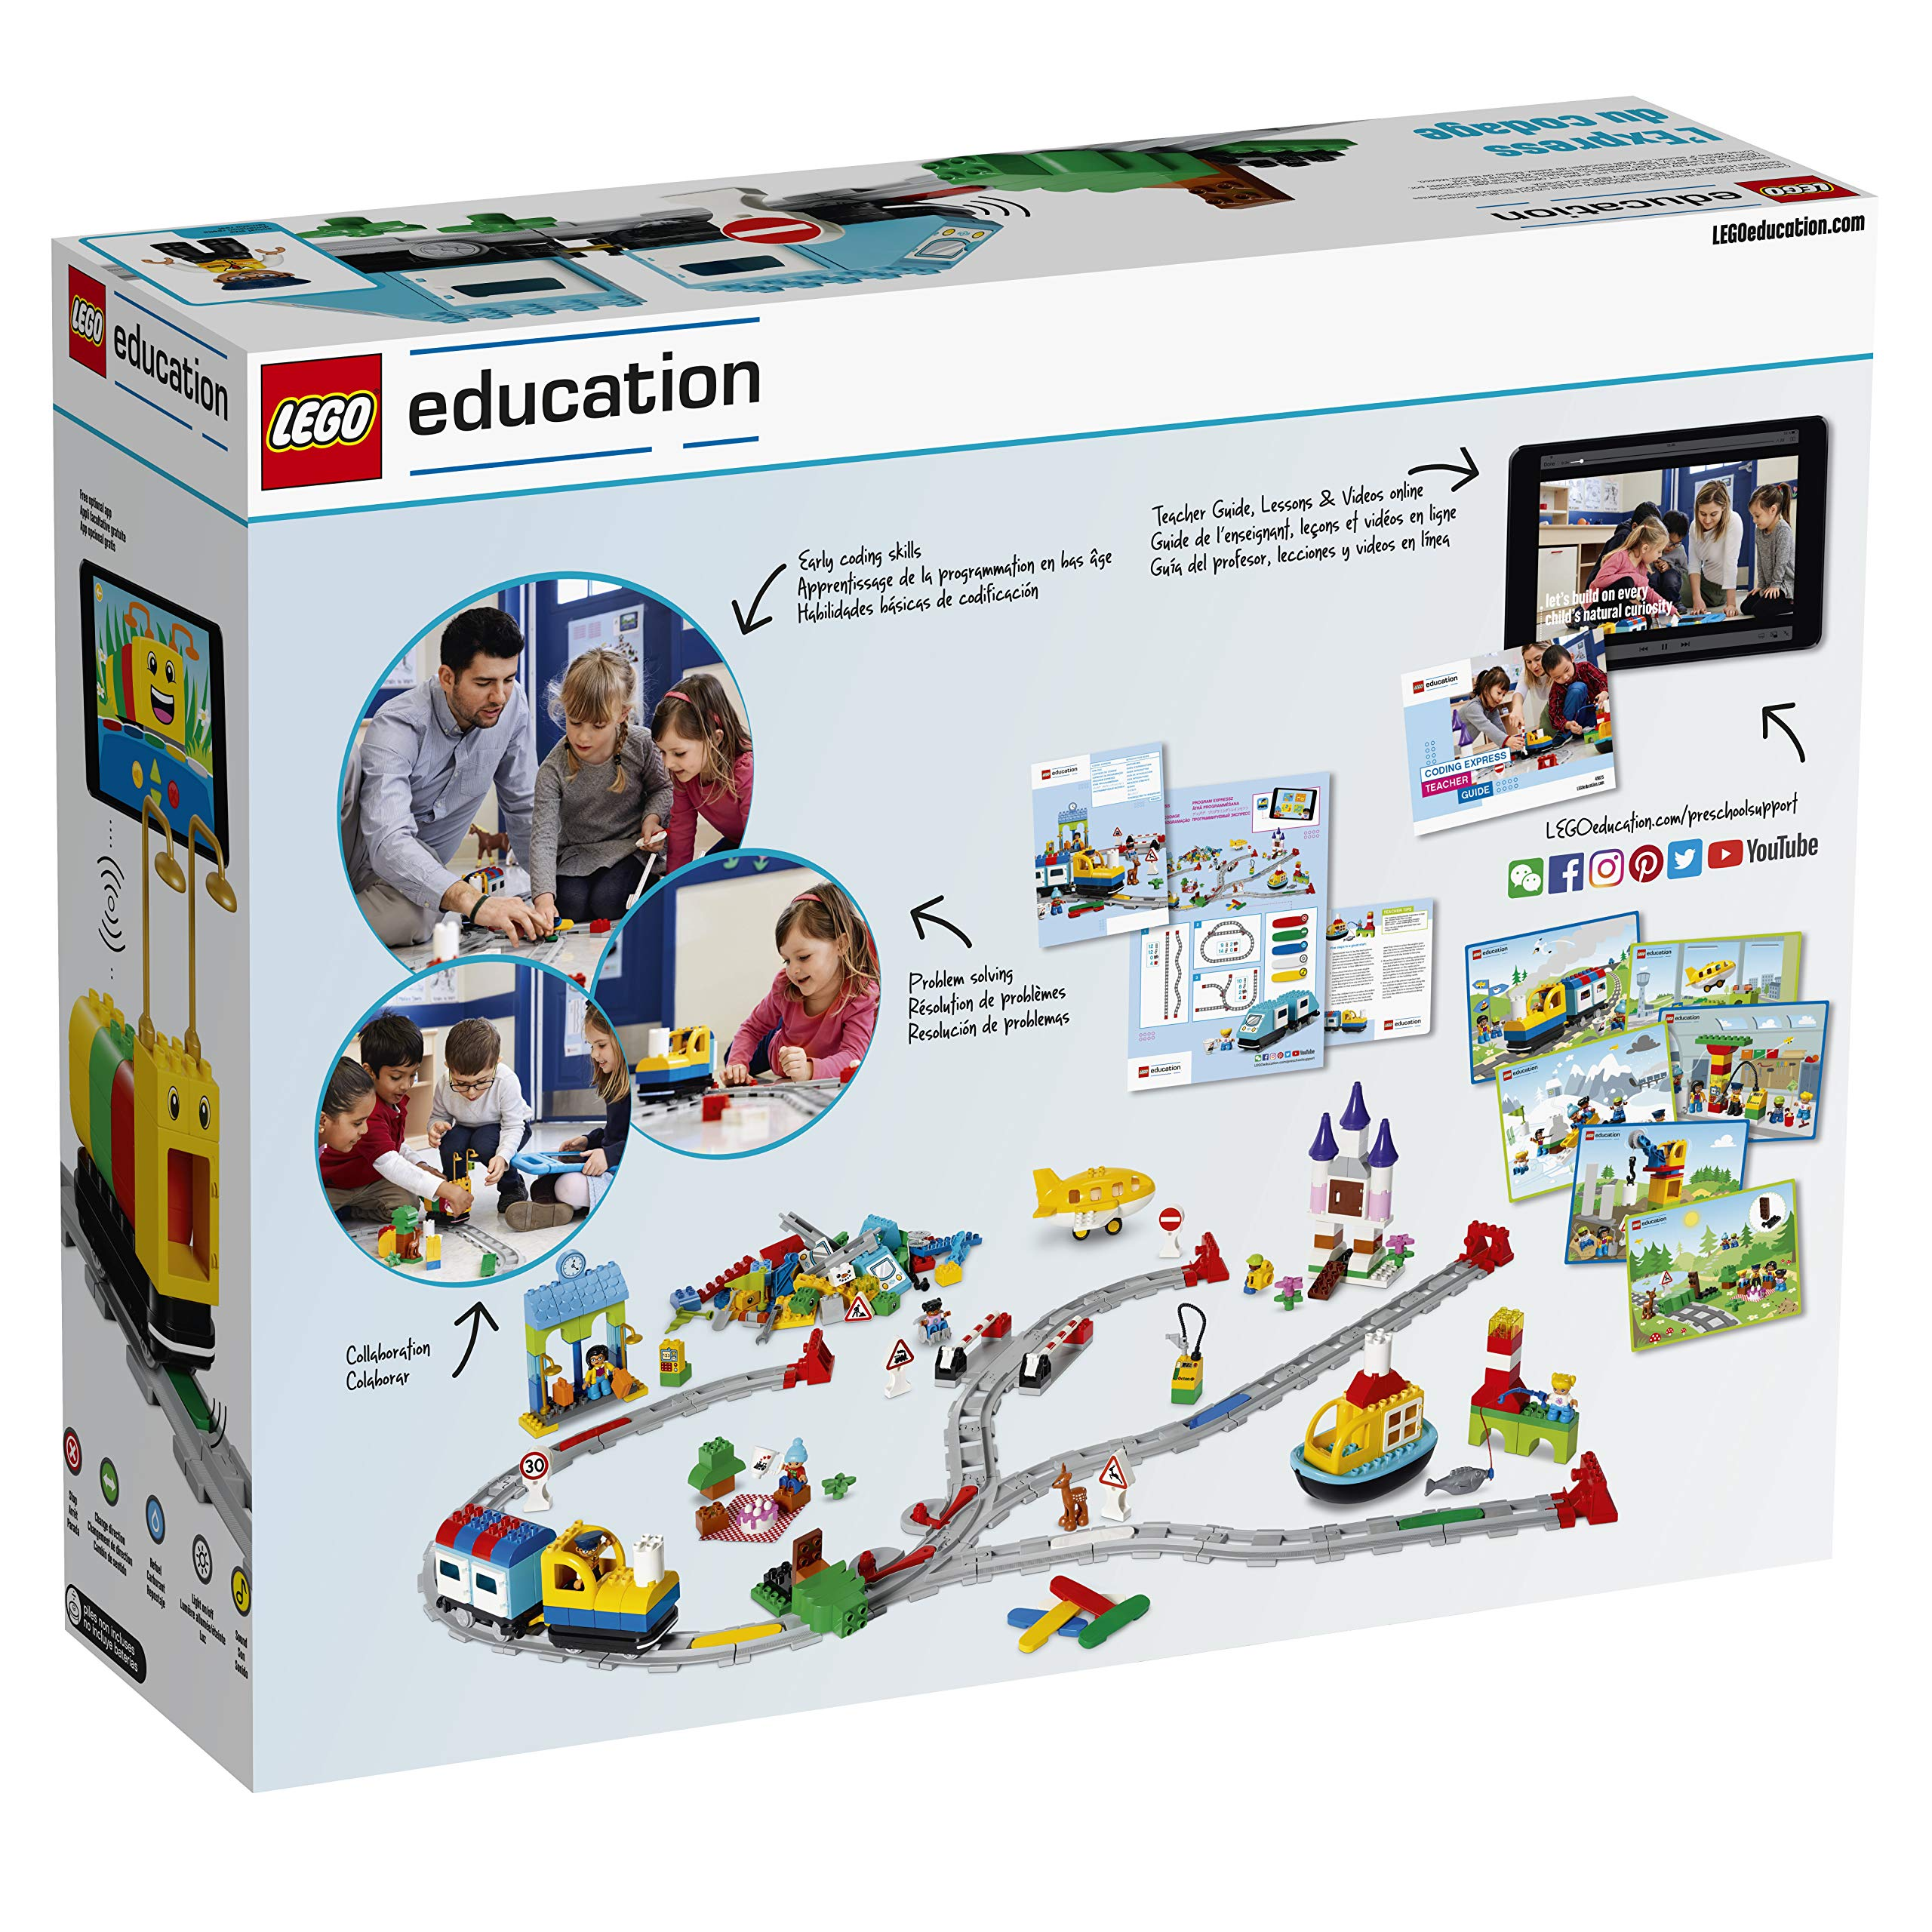 LEGO Education Duplo Coding Express 45025, Fun STEM Educational Toy, Introduction to Steam Learning for Girls & Boys Ages 2 & Up (234Piece ) by LEGO Education (Image #2)